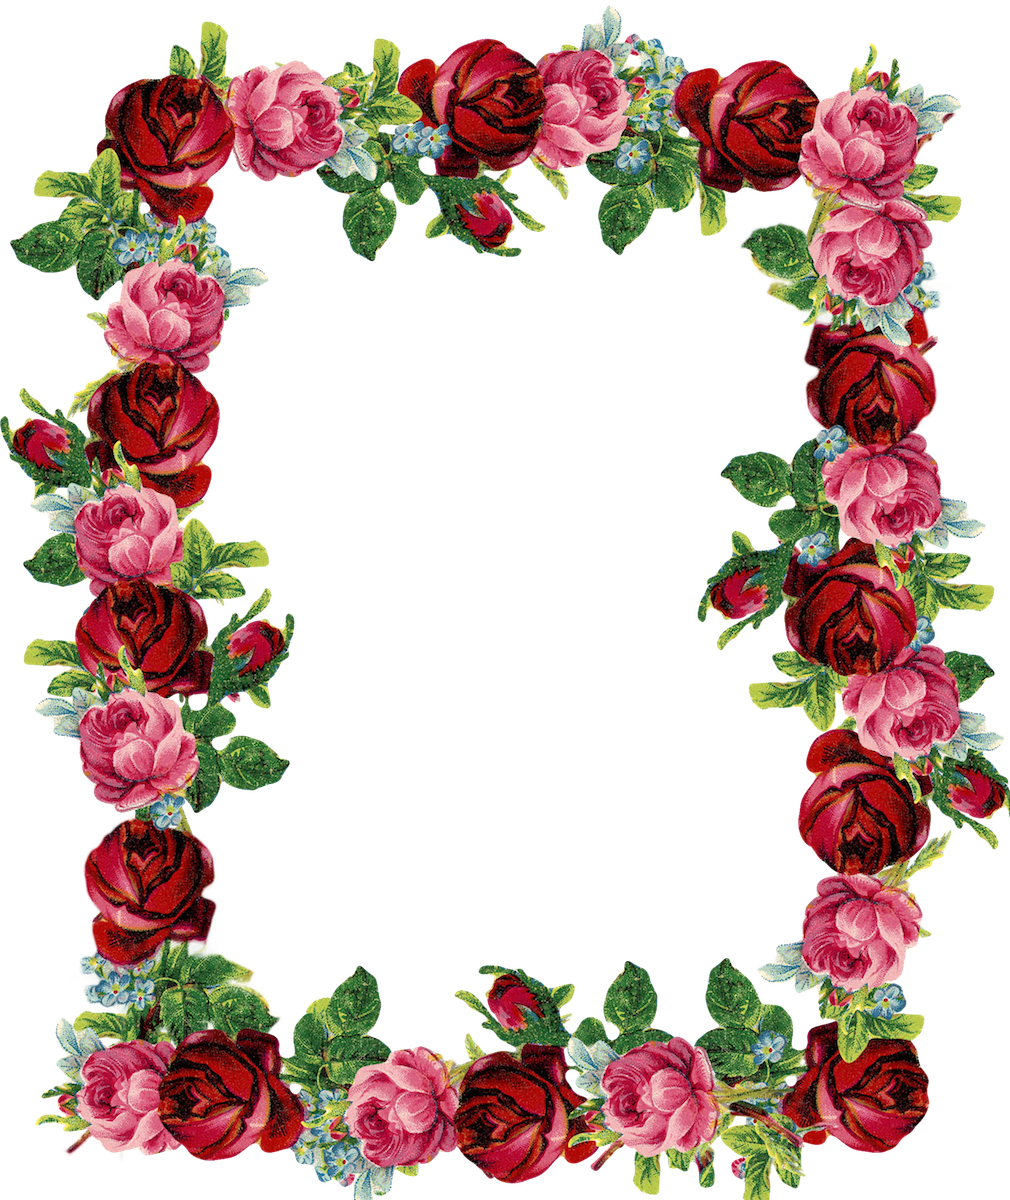 Free Digital Vintage Rose Frame And Border Png Gorgeous Red Rosenrahmen Freebie Vintage Roses Rose Frame Flower Border